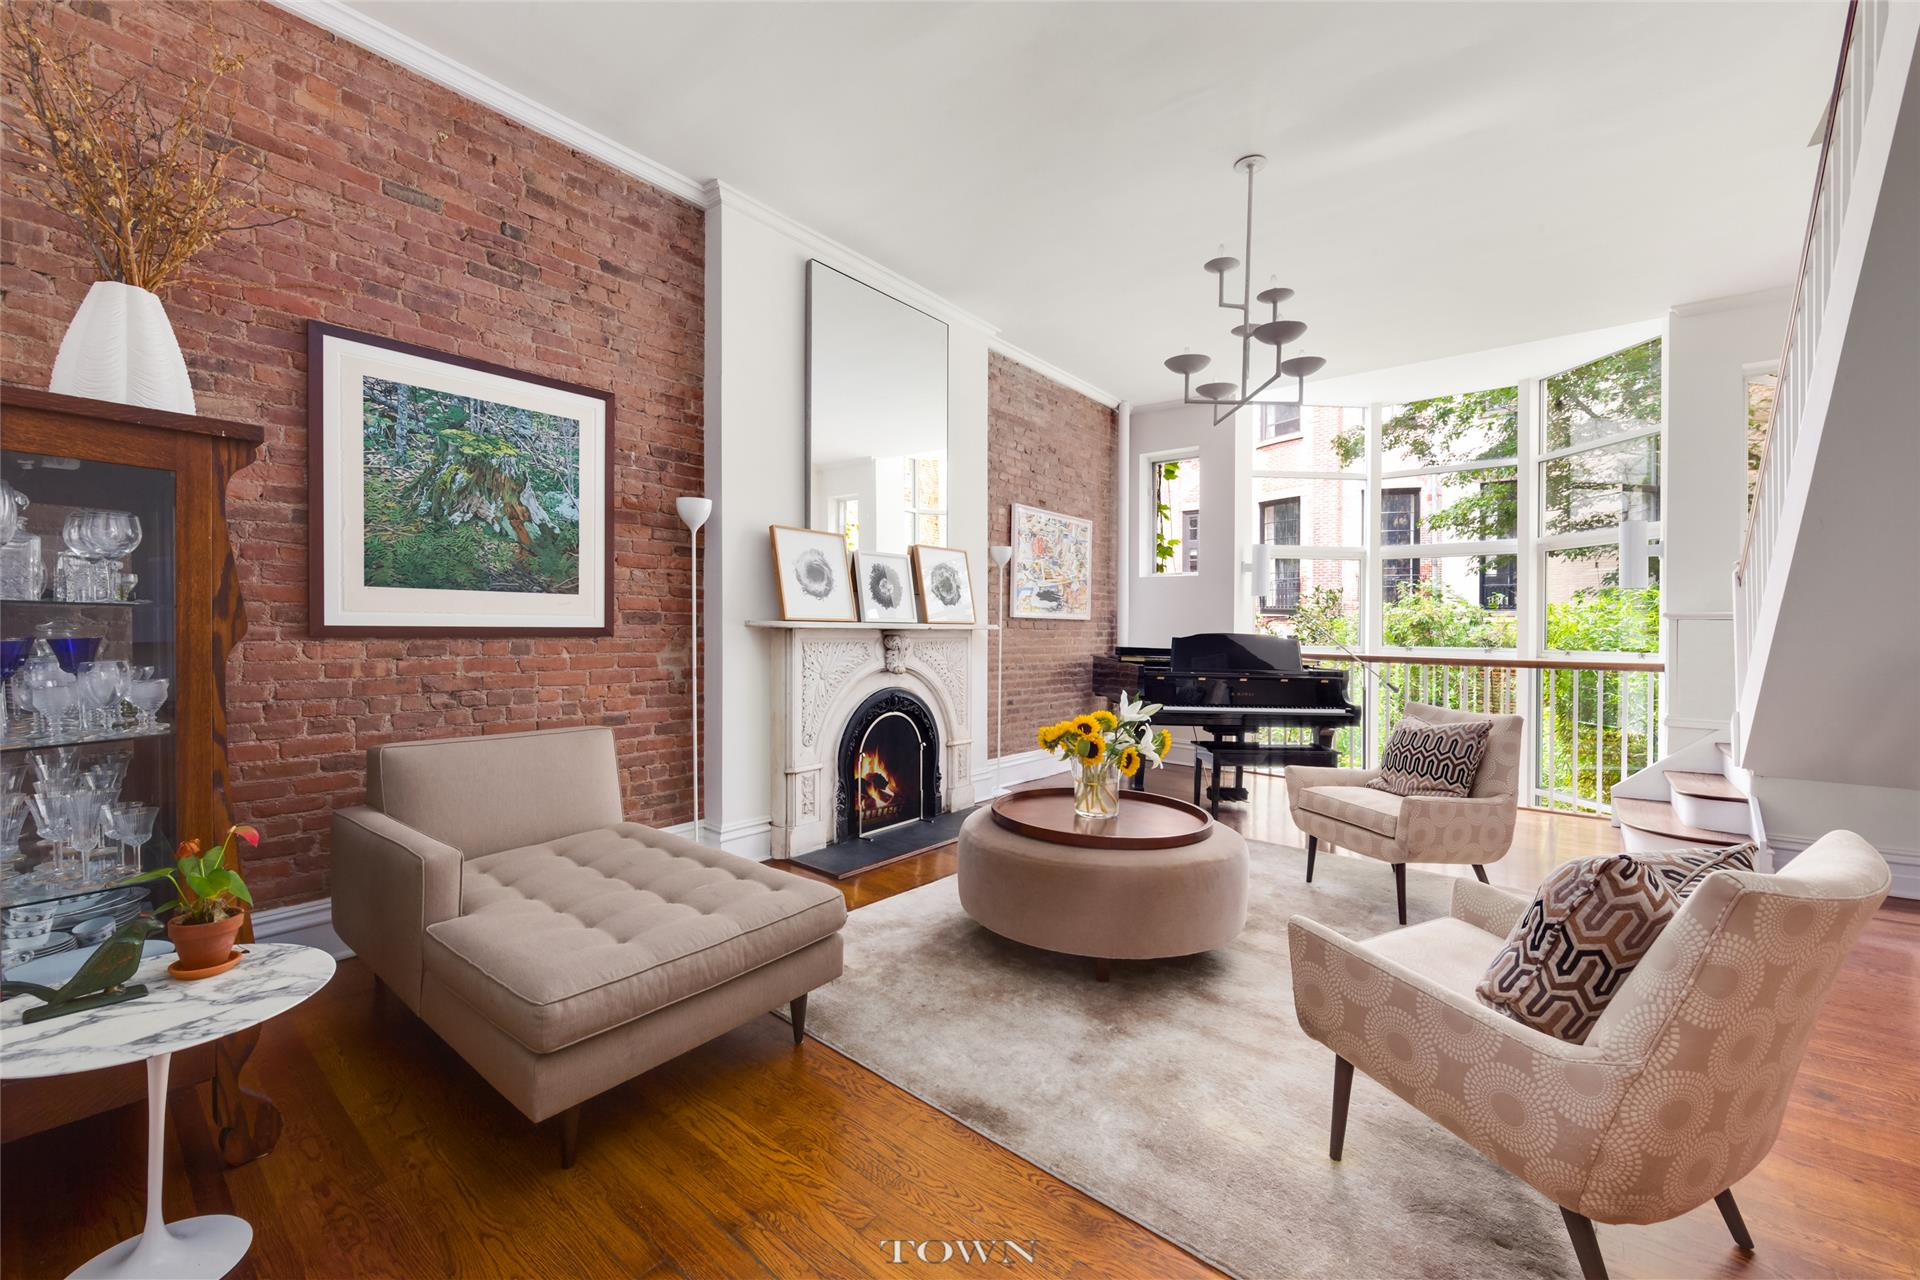 Townhouse for Sale at 11 West 9th Street 11 West 9th Street New York, New York 10011 United States